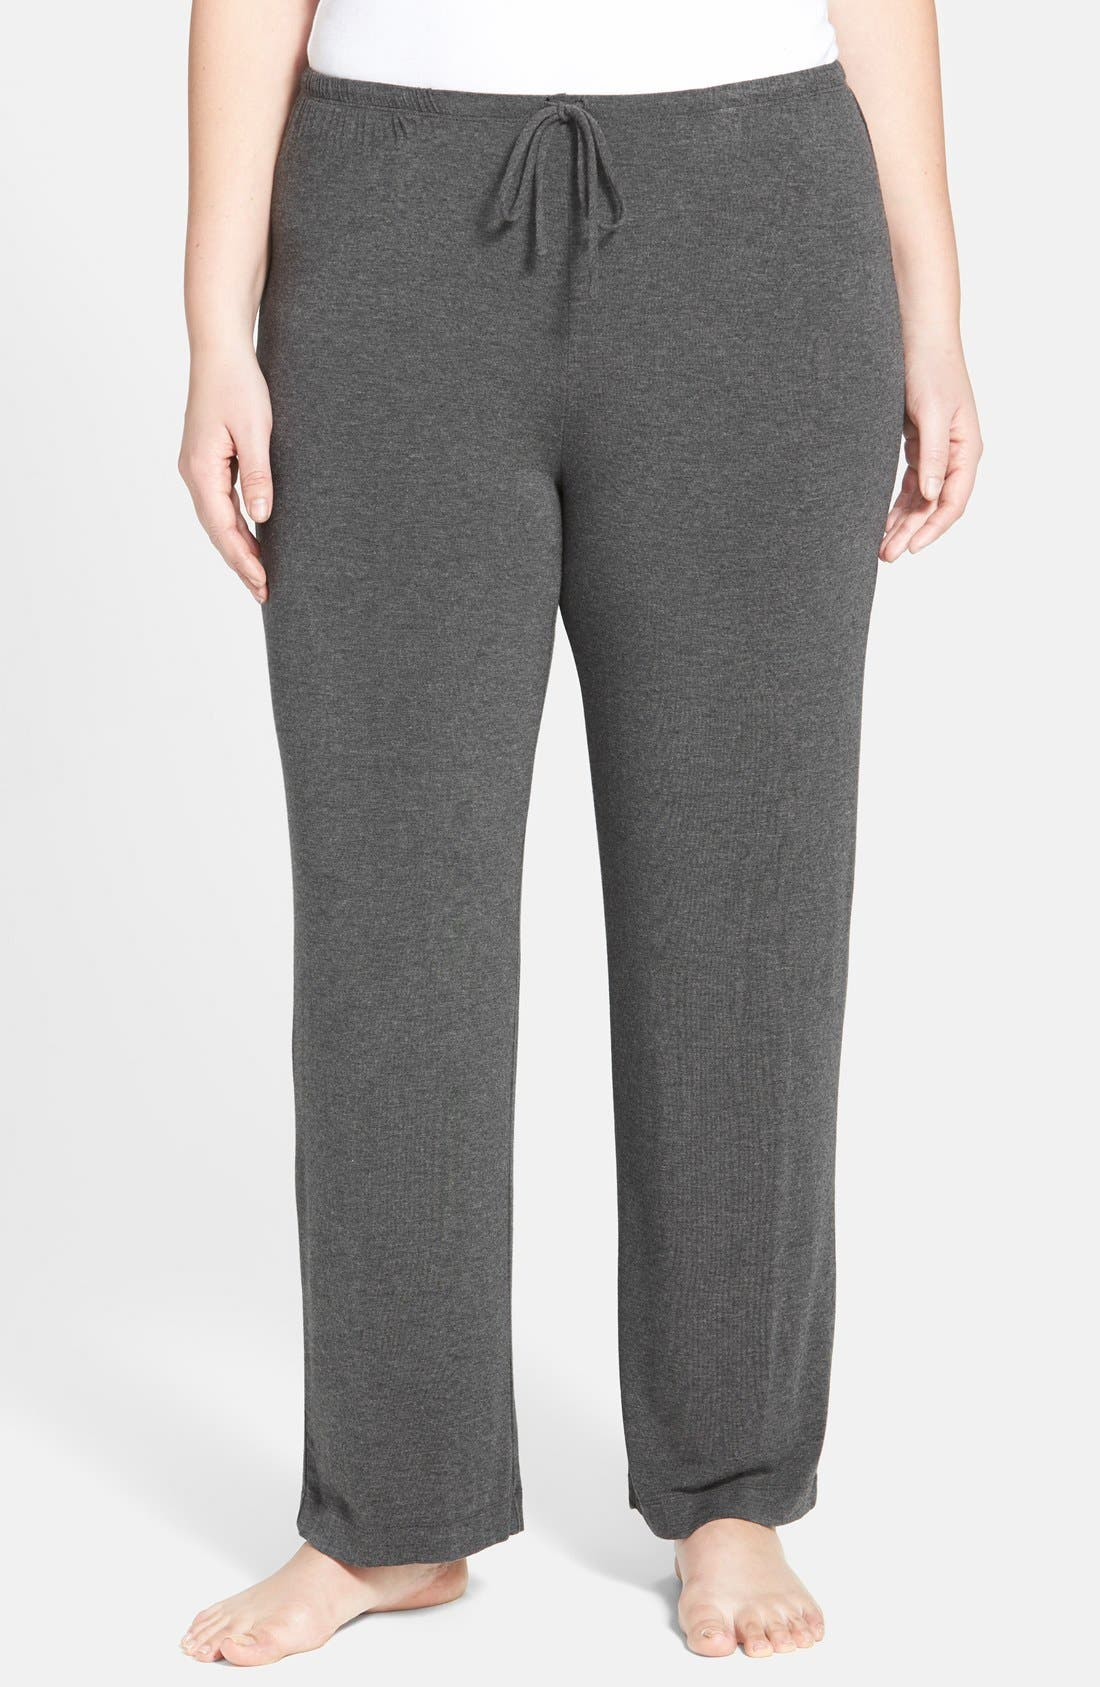 DKNY 'Urban Essentials' Pants